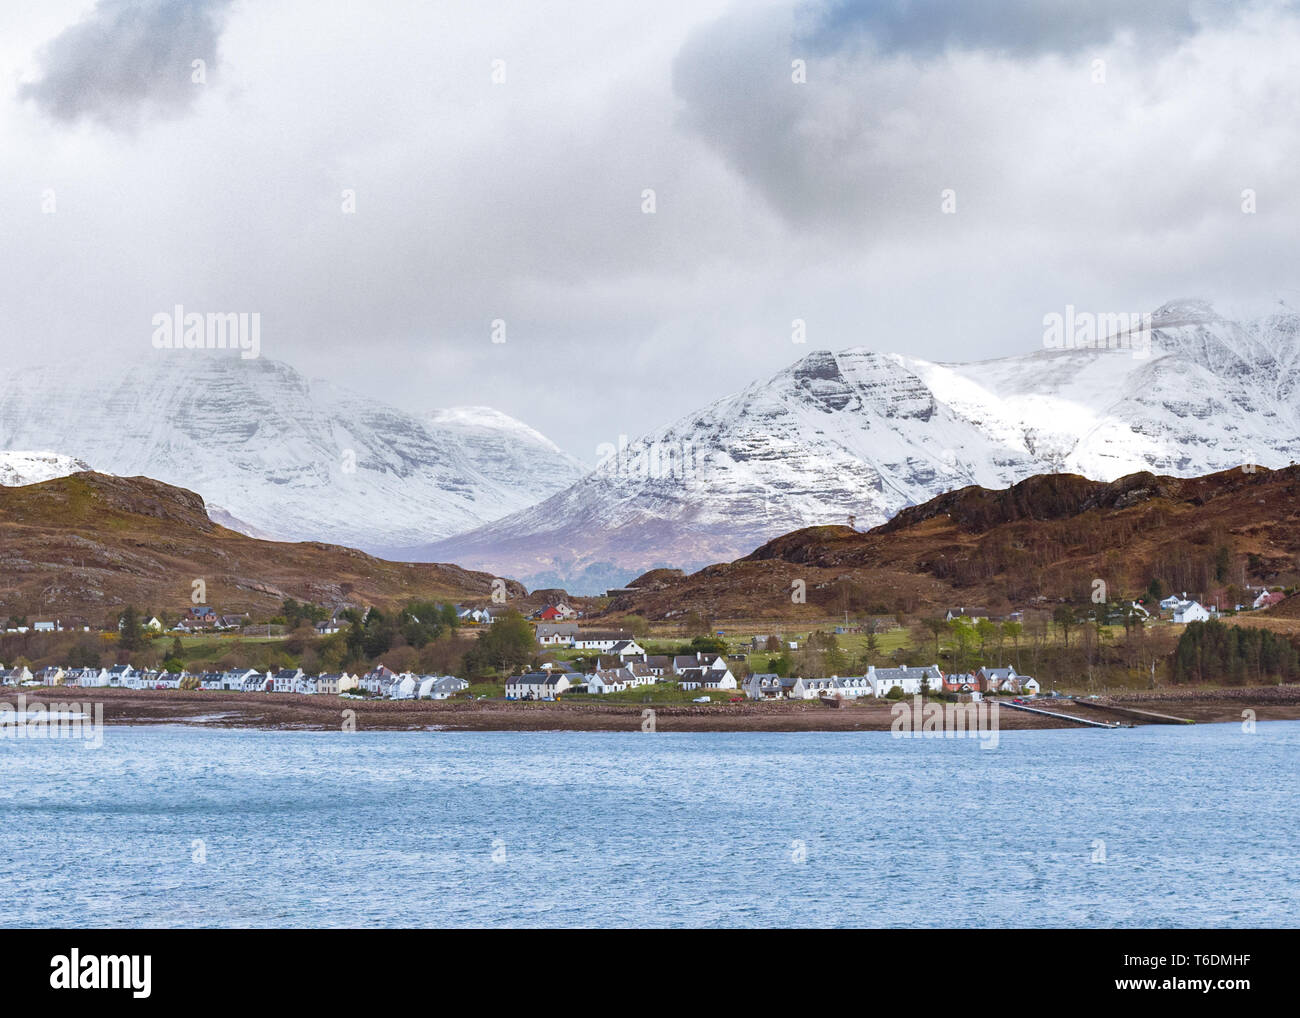 Shieldaig village on the North Coast 500 route, Torridon, Scotland, UK - Stock Image